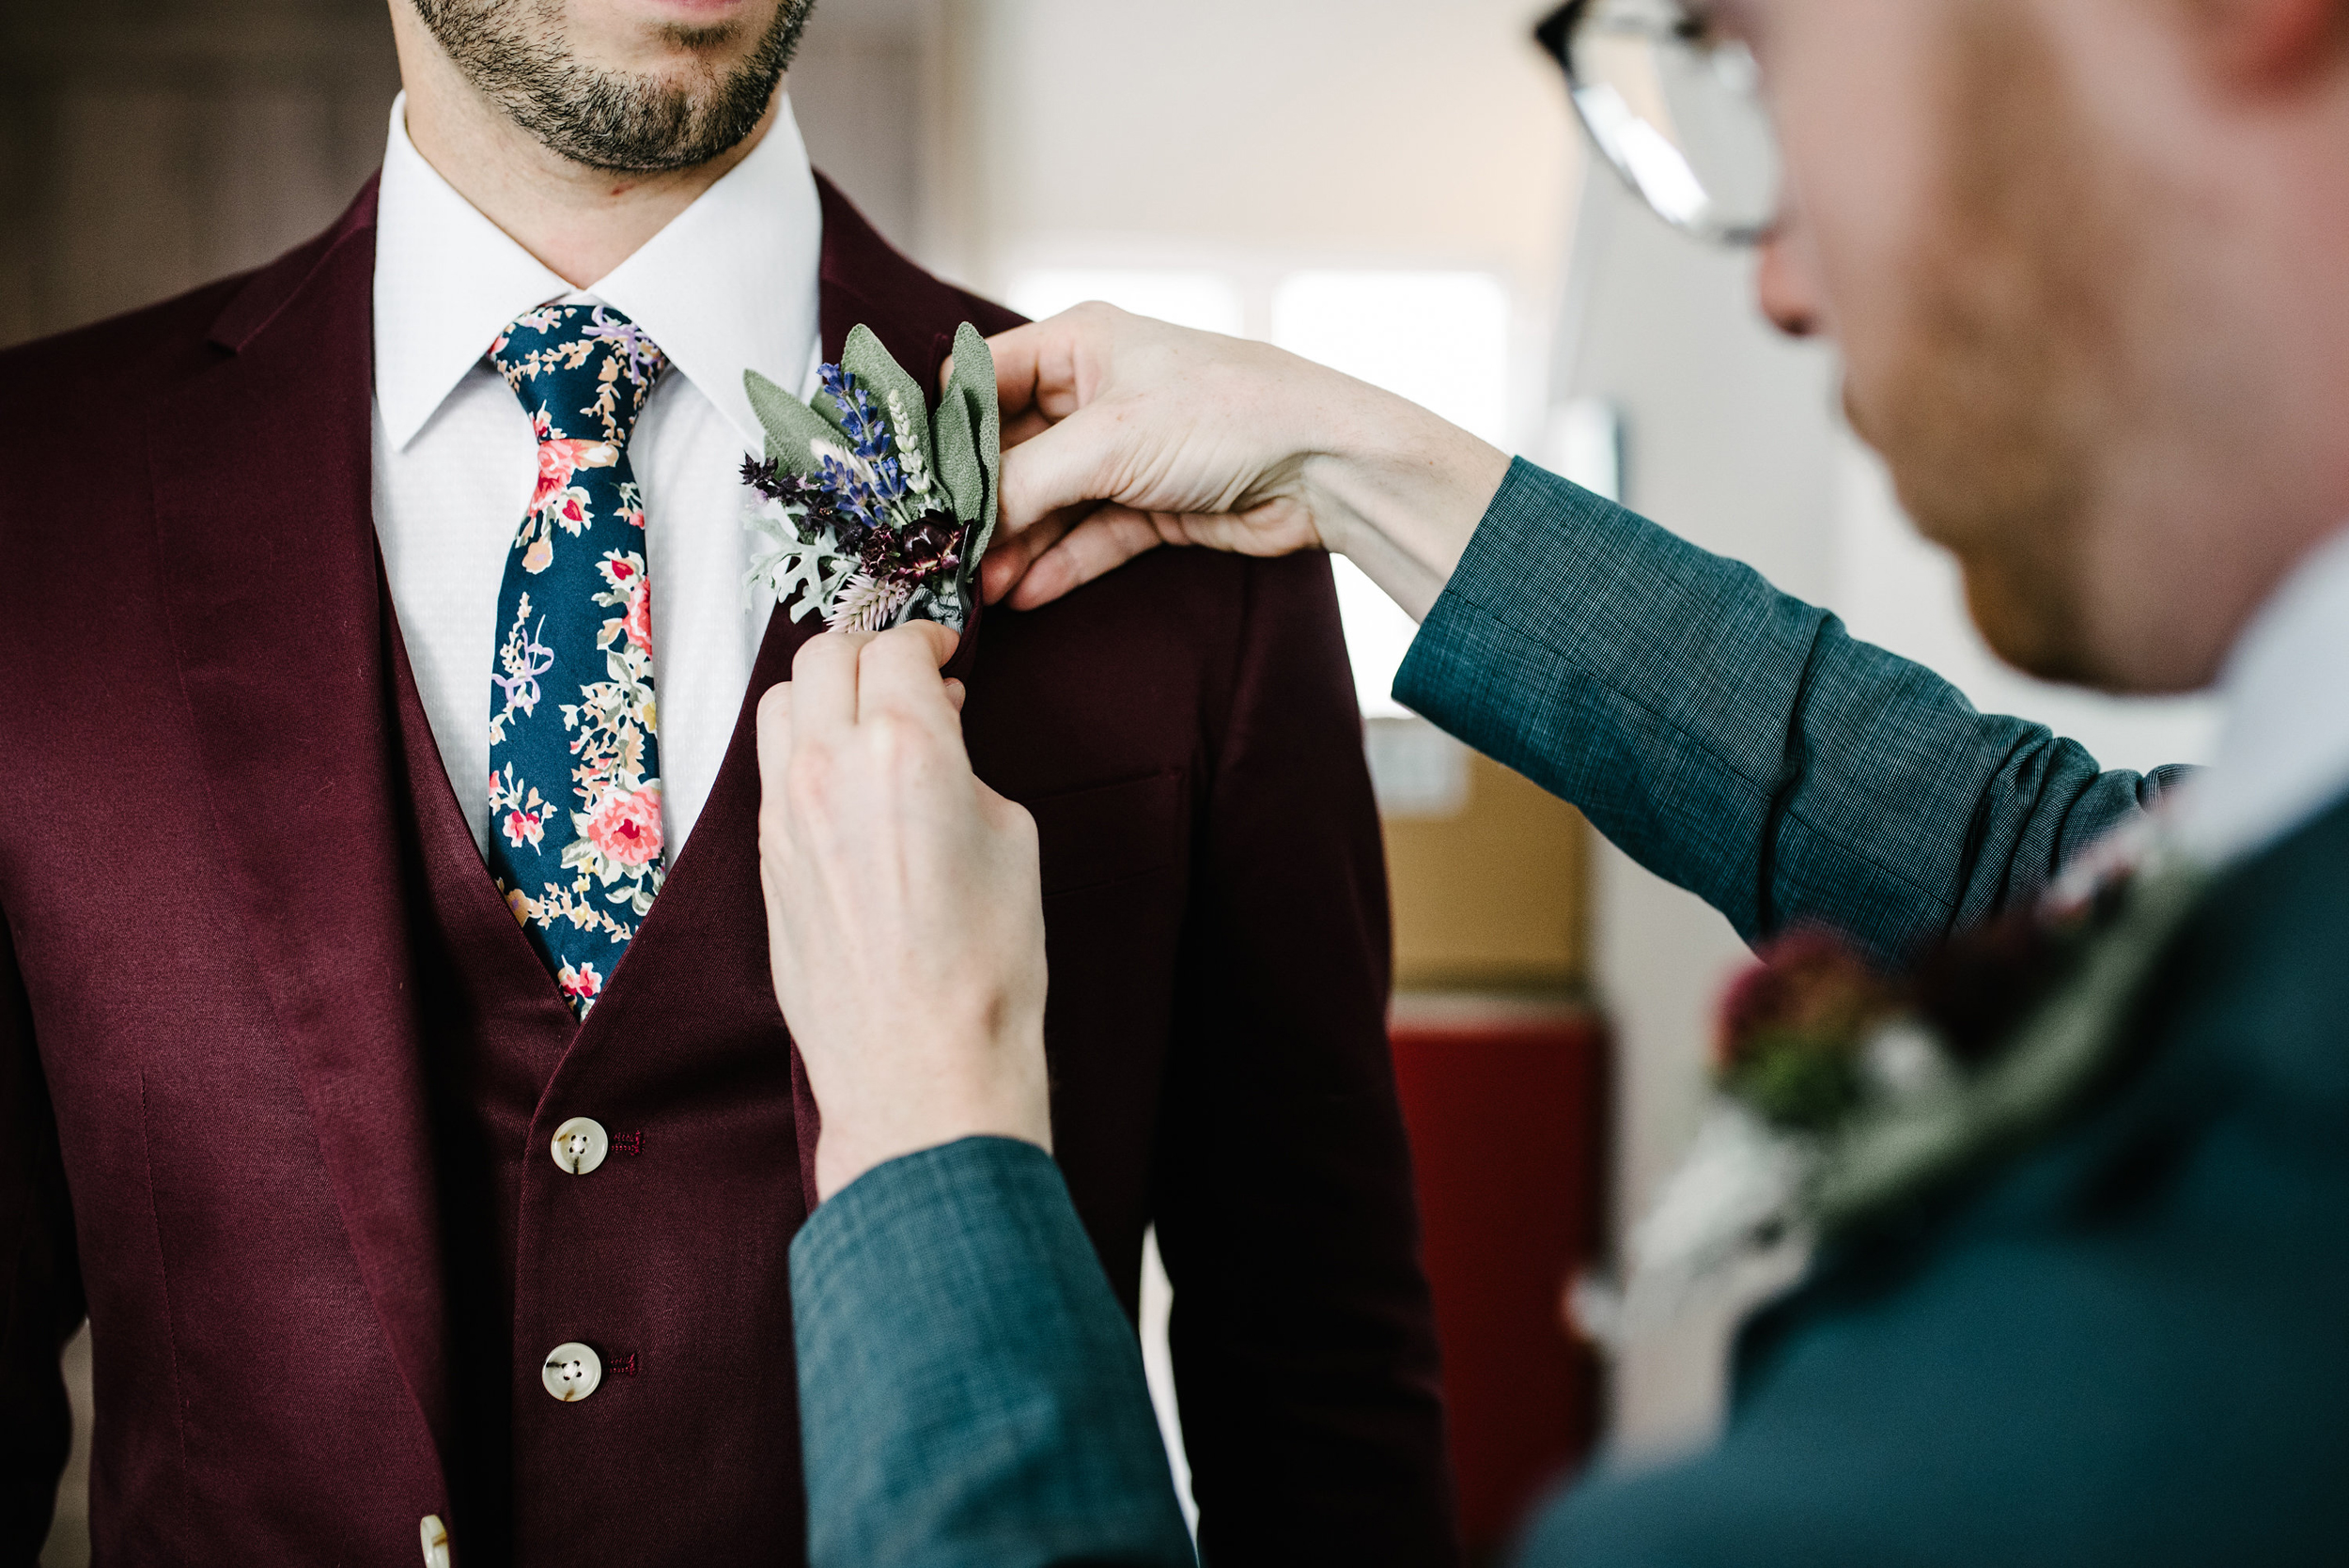 Groom style at Maas Building | Philadelphia Wedding Planner Heart & Dash | AGP Collective | Maas Building Wedding